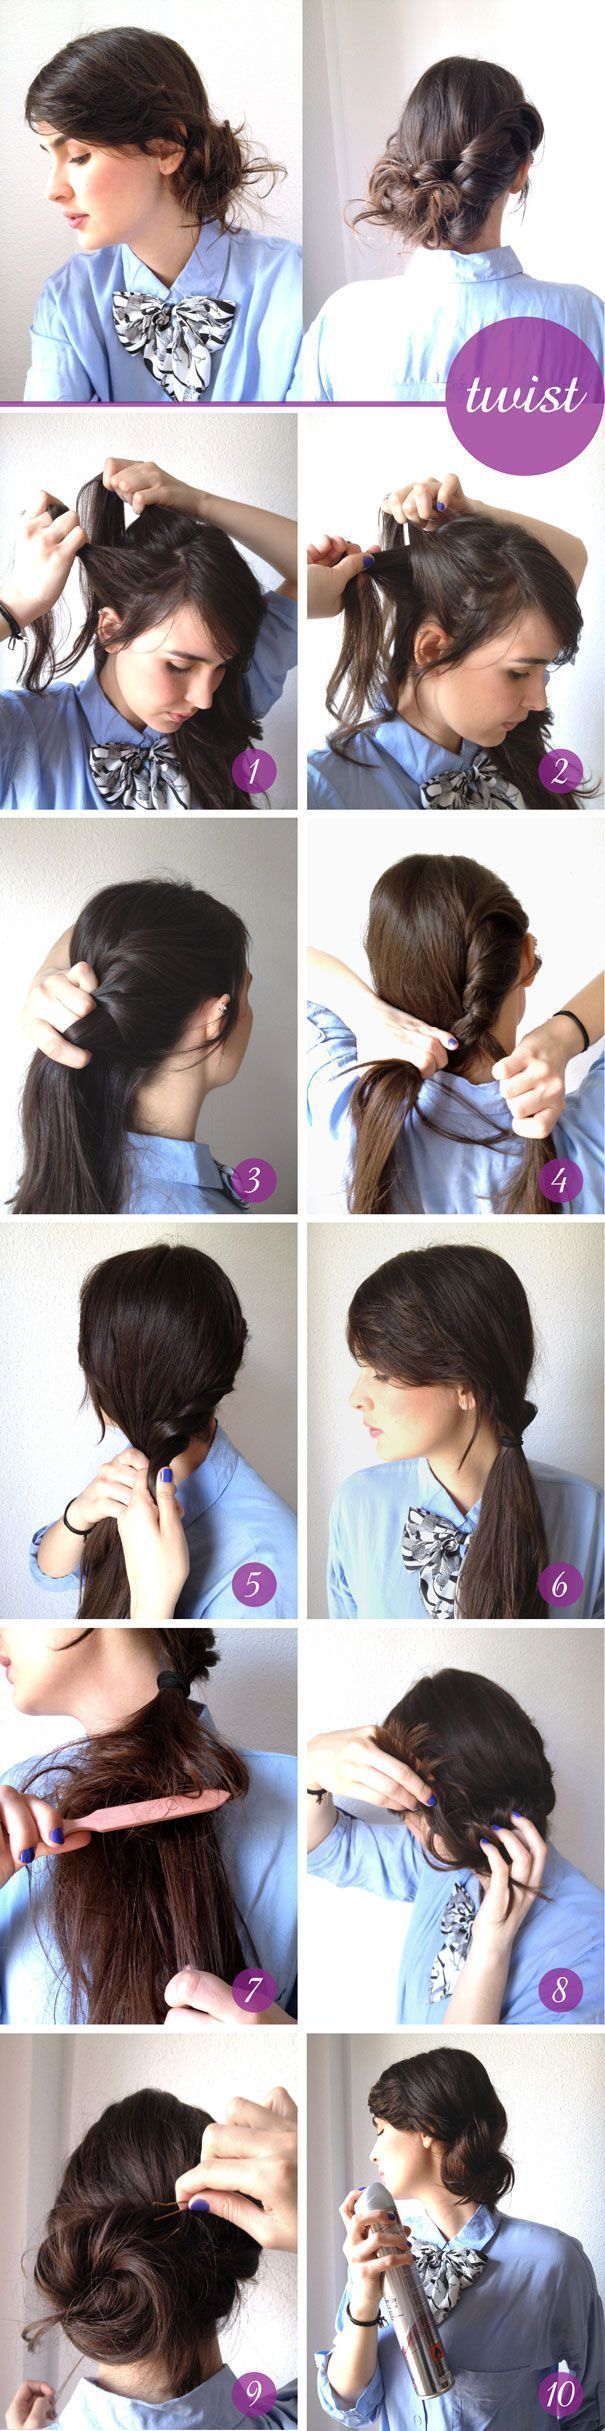 Cool DIY hairstyles for girls2 Cool DIY hairstyles for girls